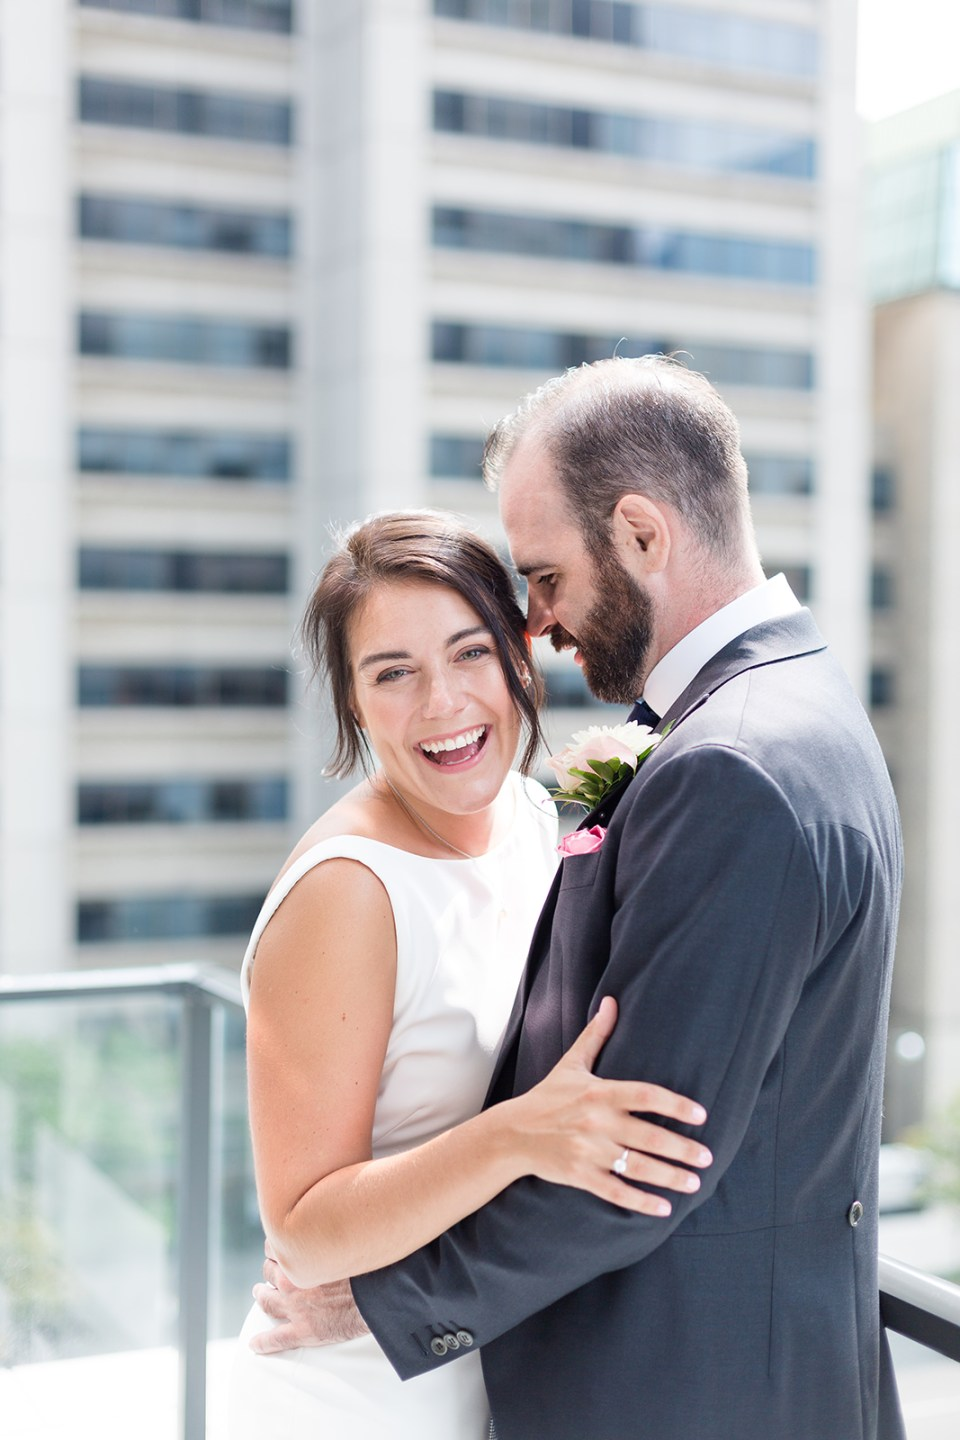 groom holding a bride while she is laughing